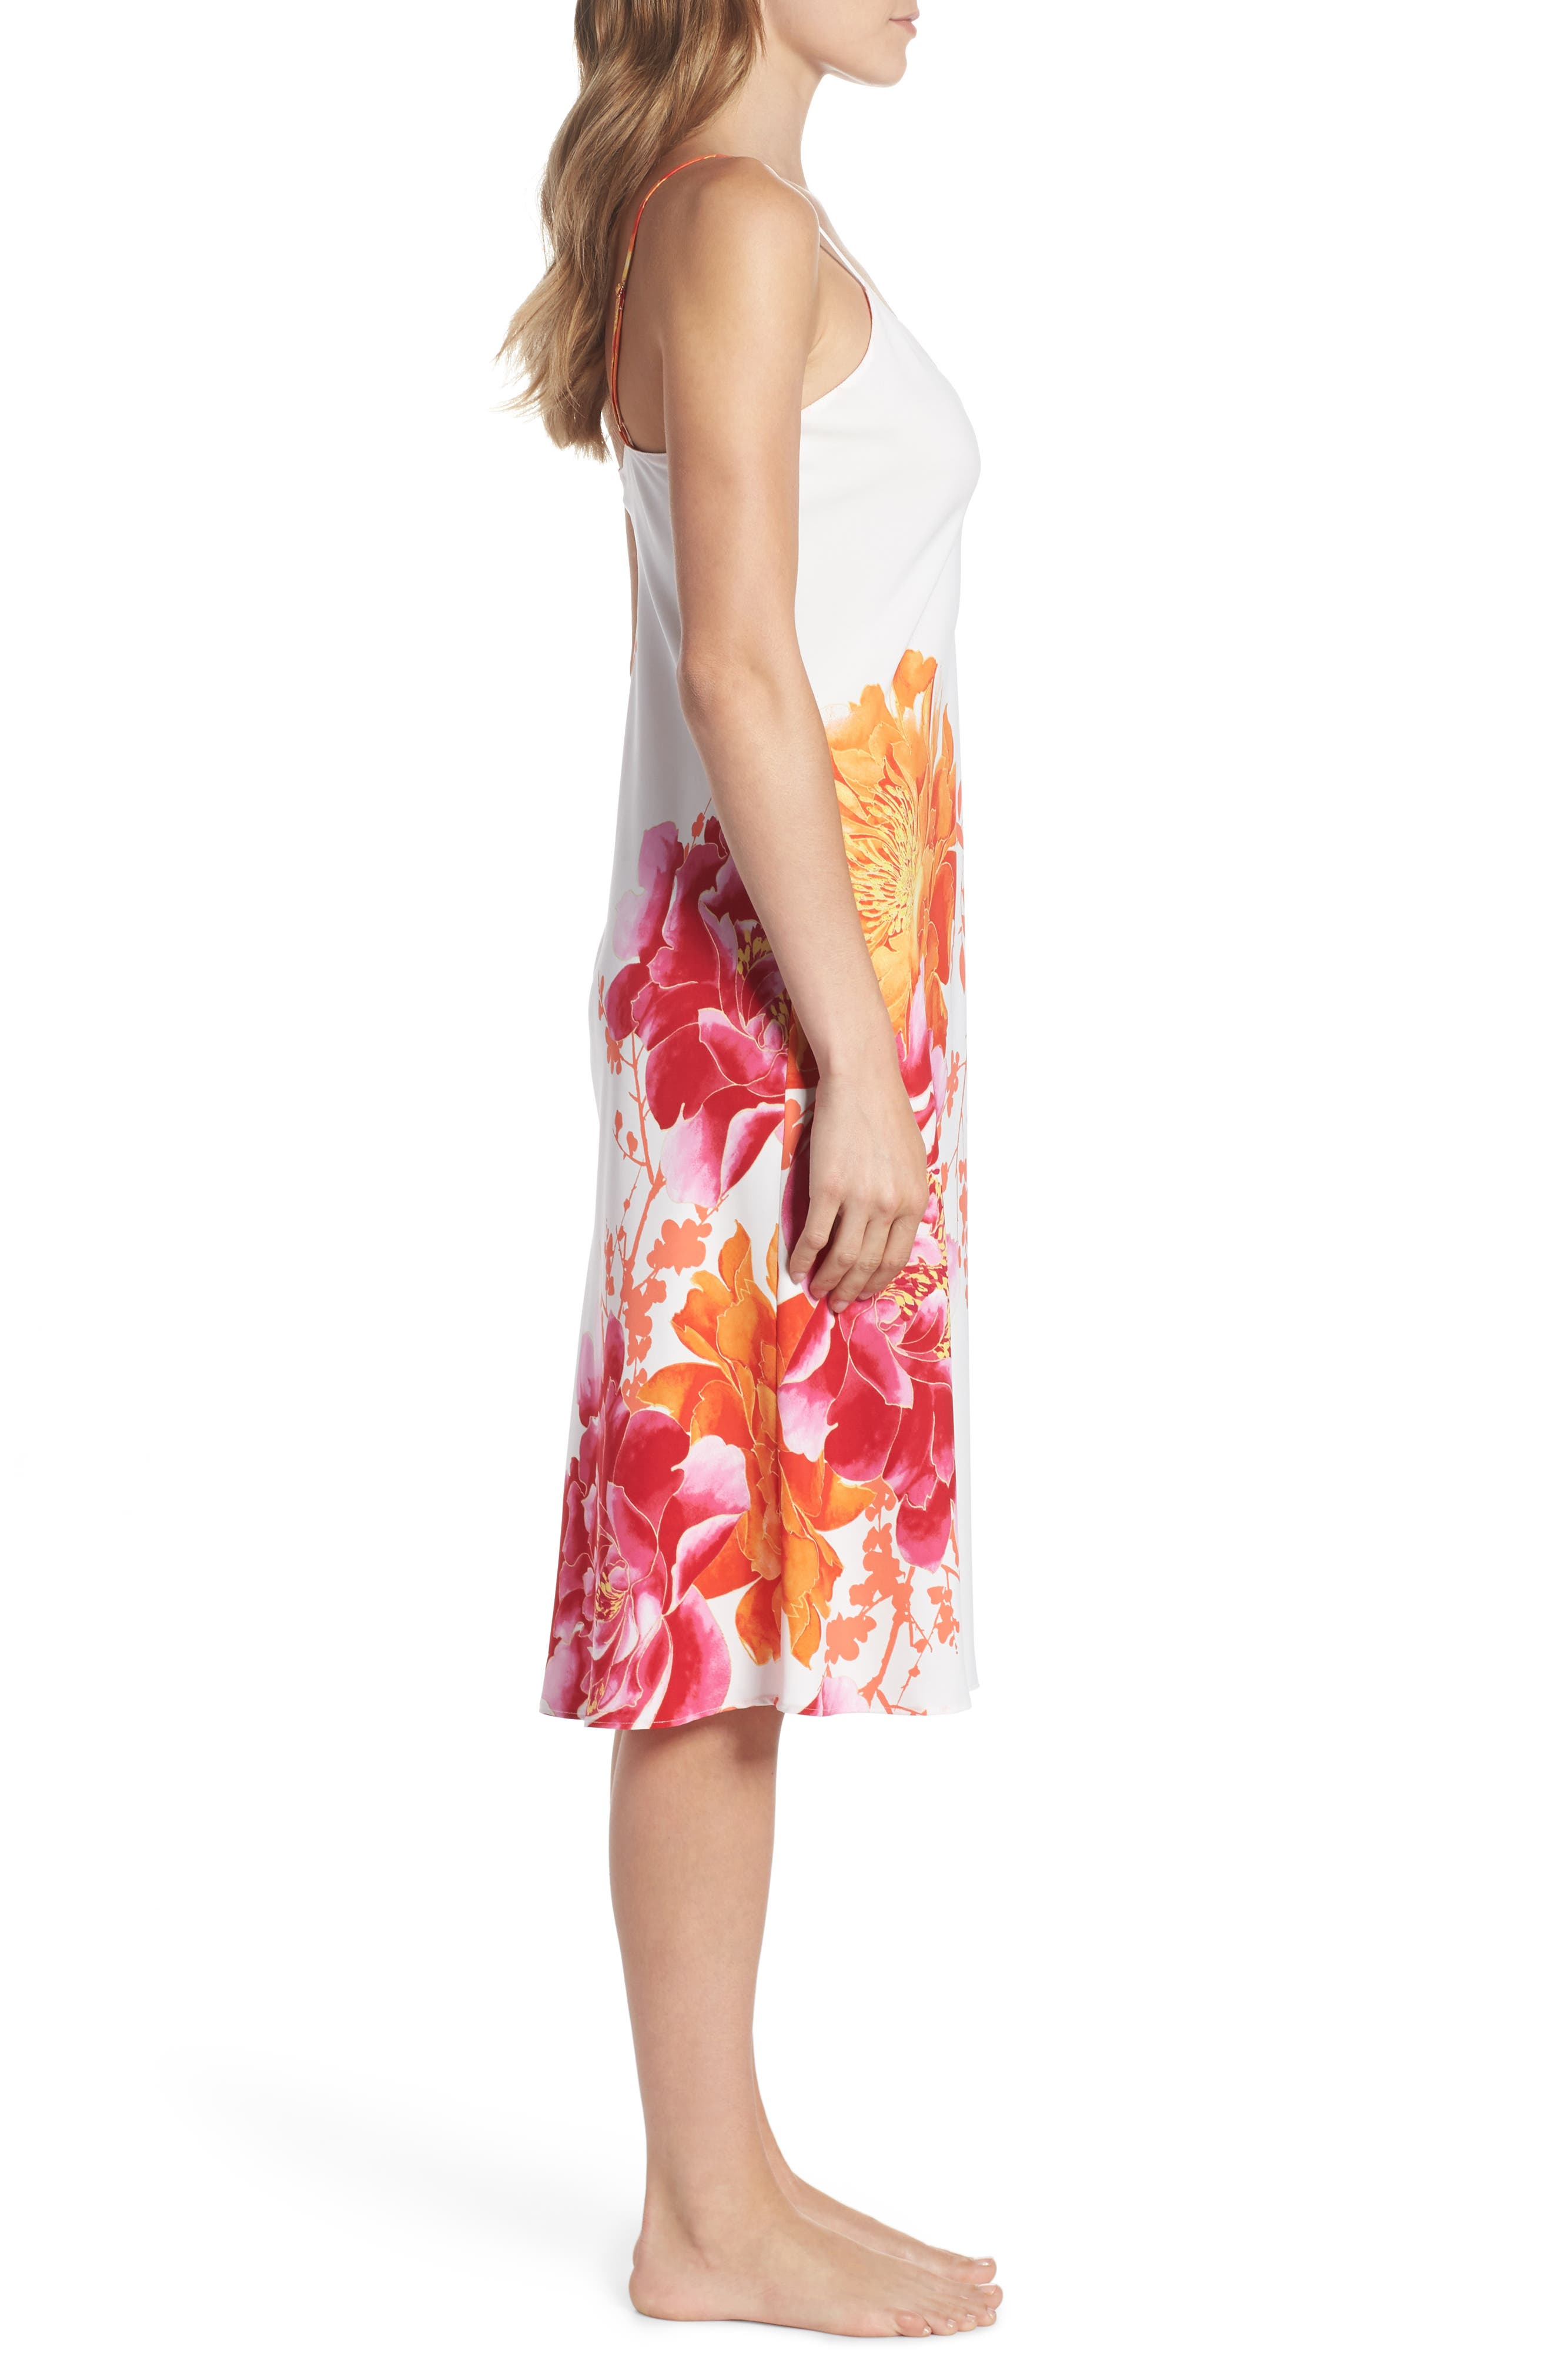 Bali Floral Print Slip,                             Alternate thumbnail 3, color,                             100